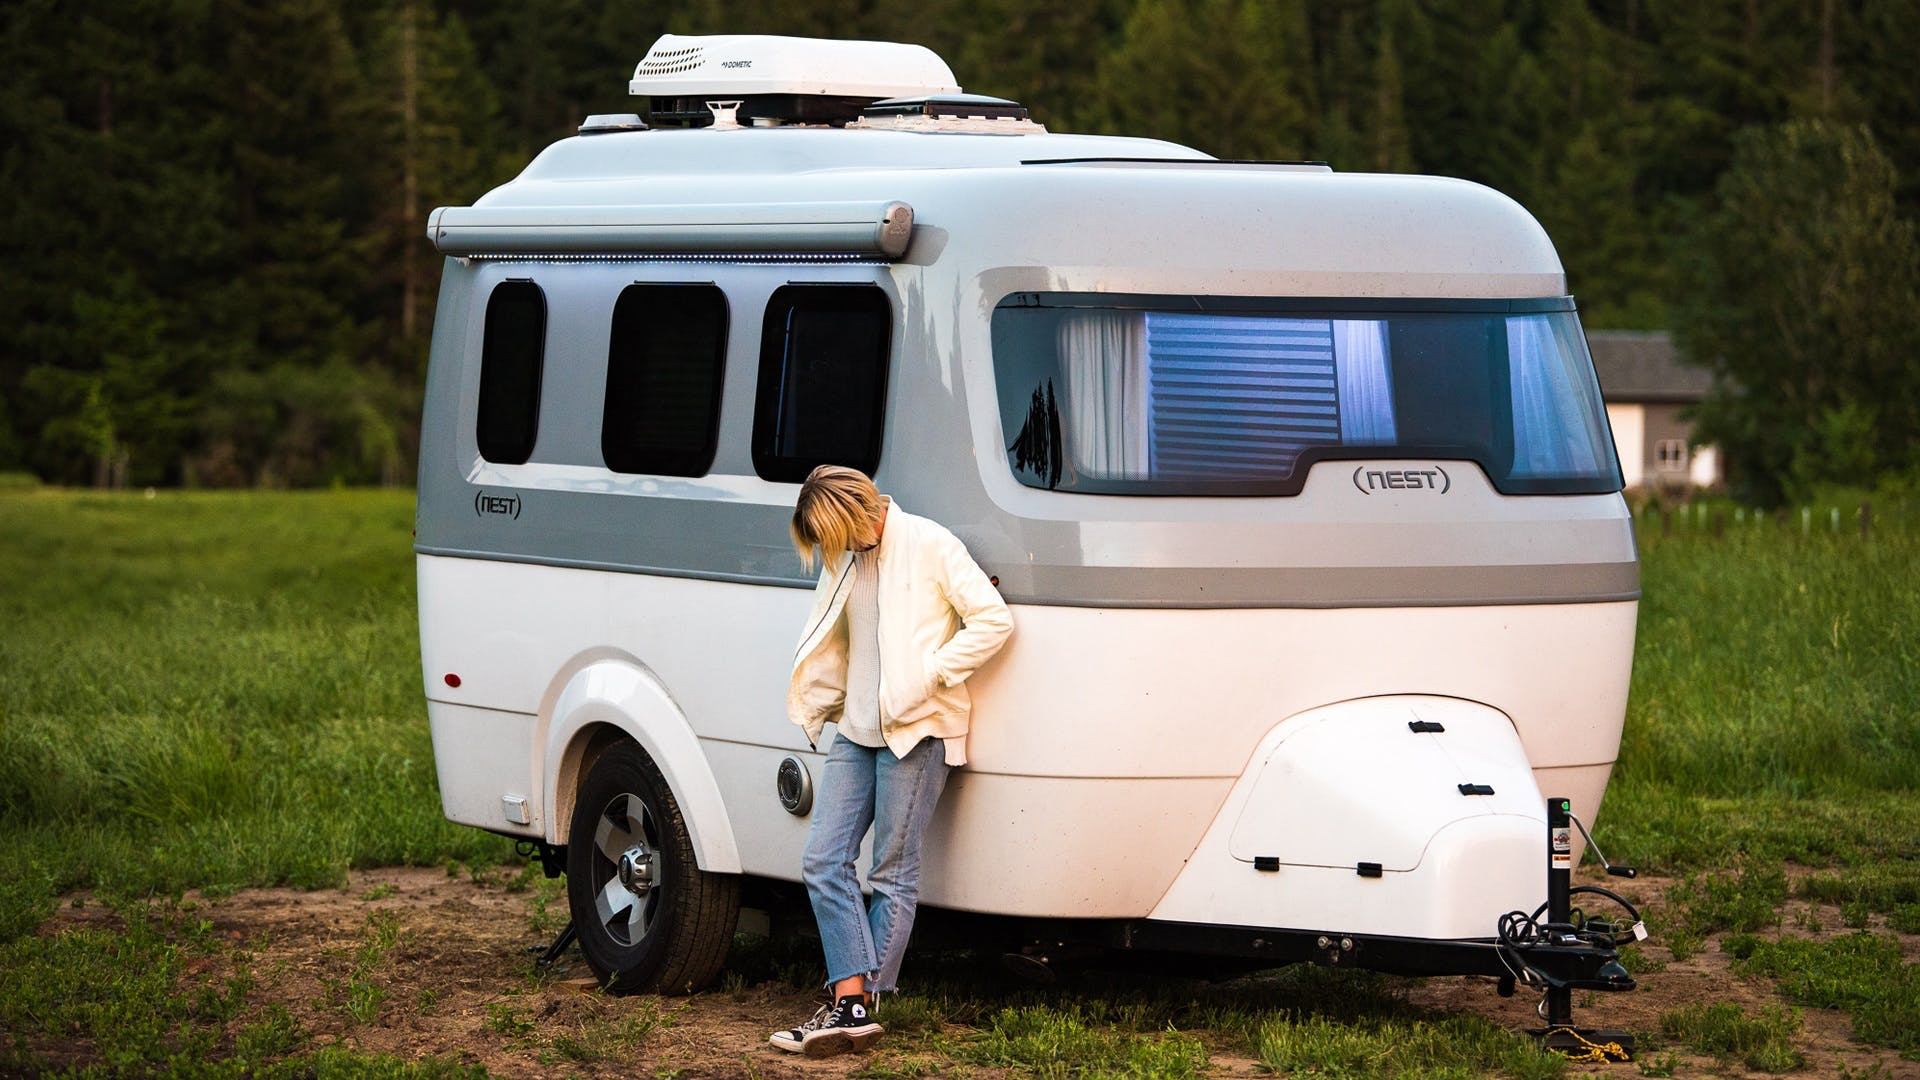 Airstream Travel Trailer Nest Laura Austin front outside